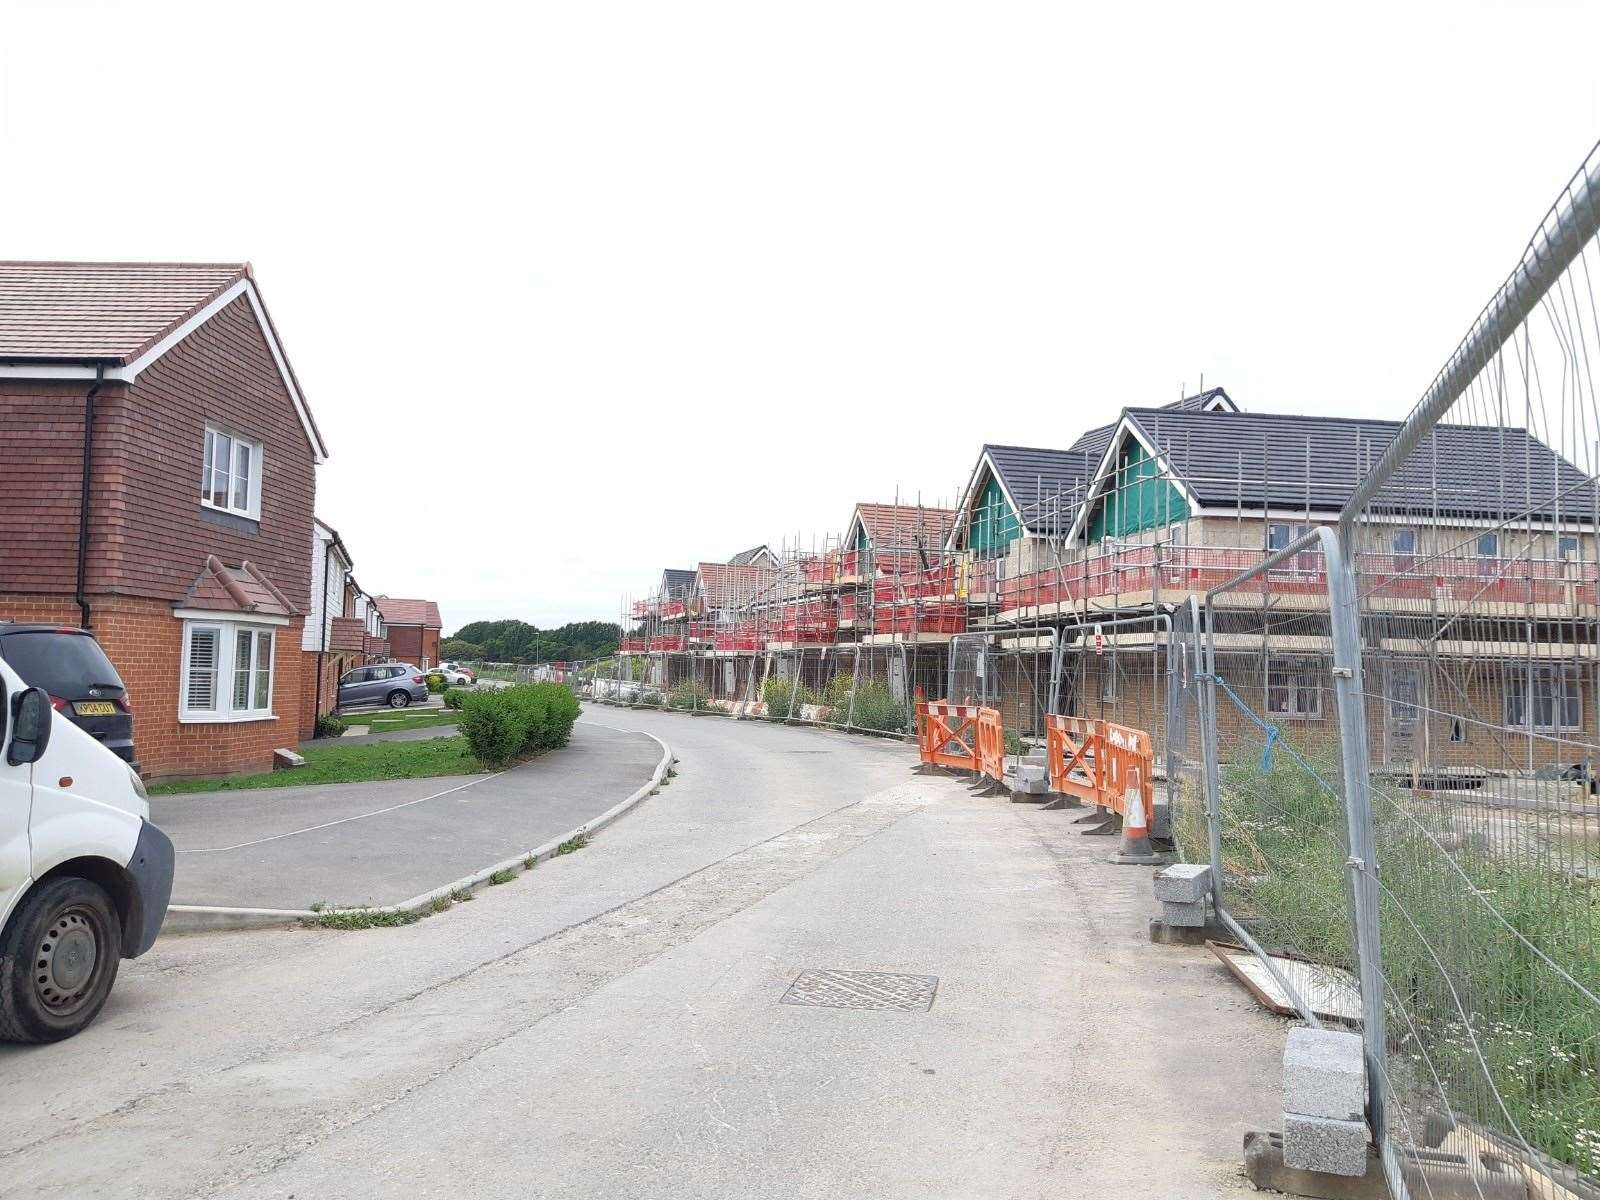 Persimmon is currently building 70 more homes, in addition to 230 already constructed